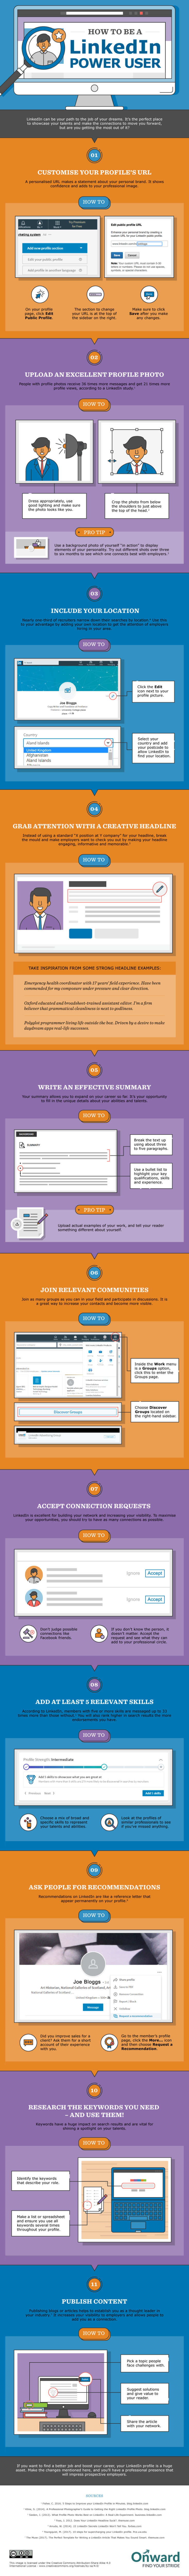 Infographic guide to becoming a linkedin power user